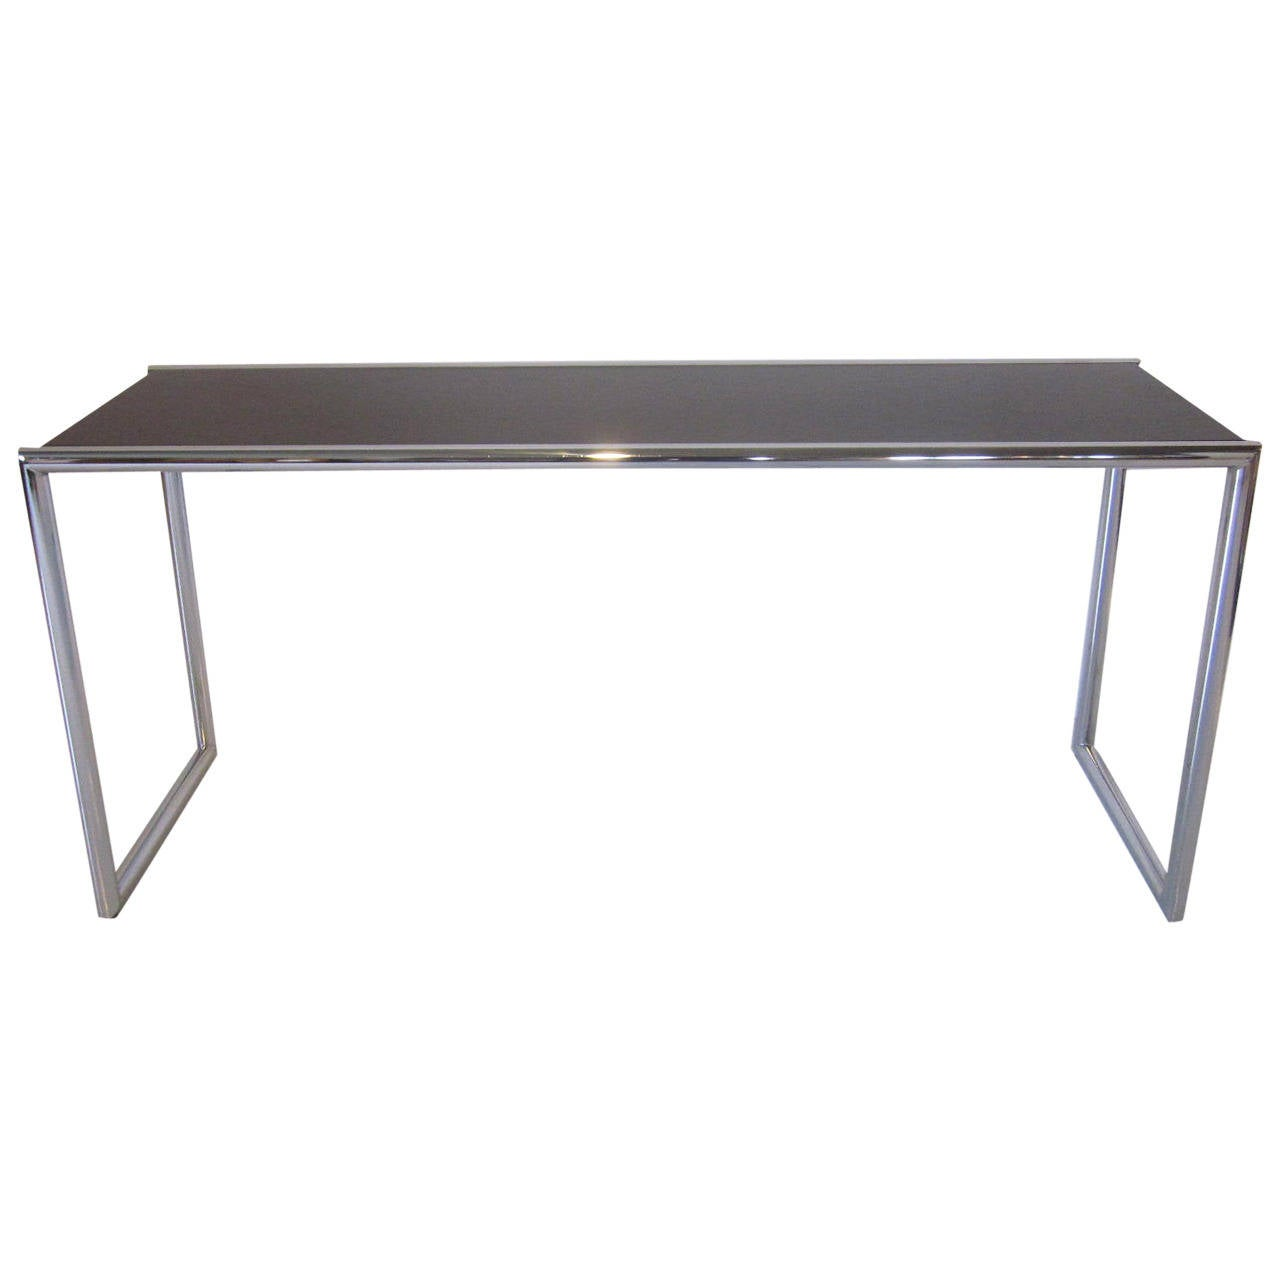 Milo Baughman Styled Chrome Console Table